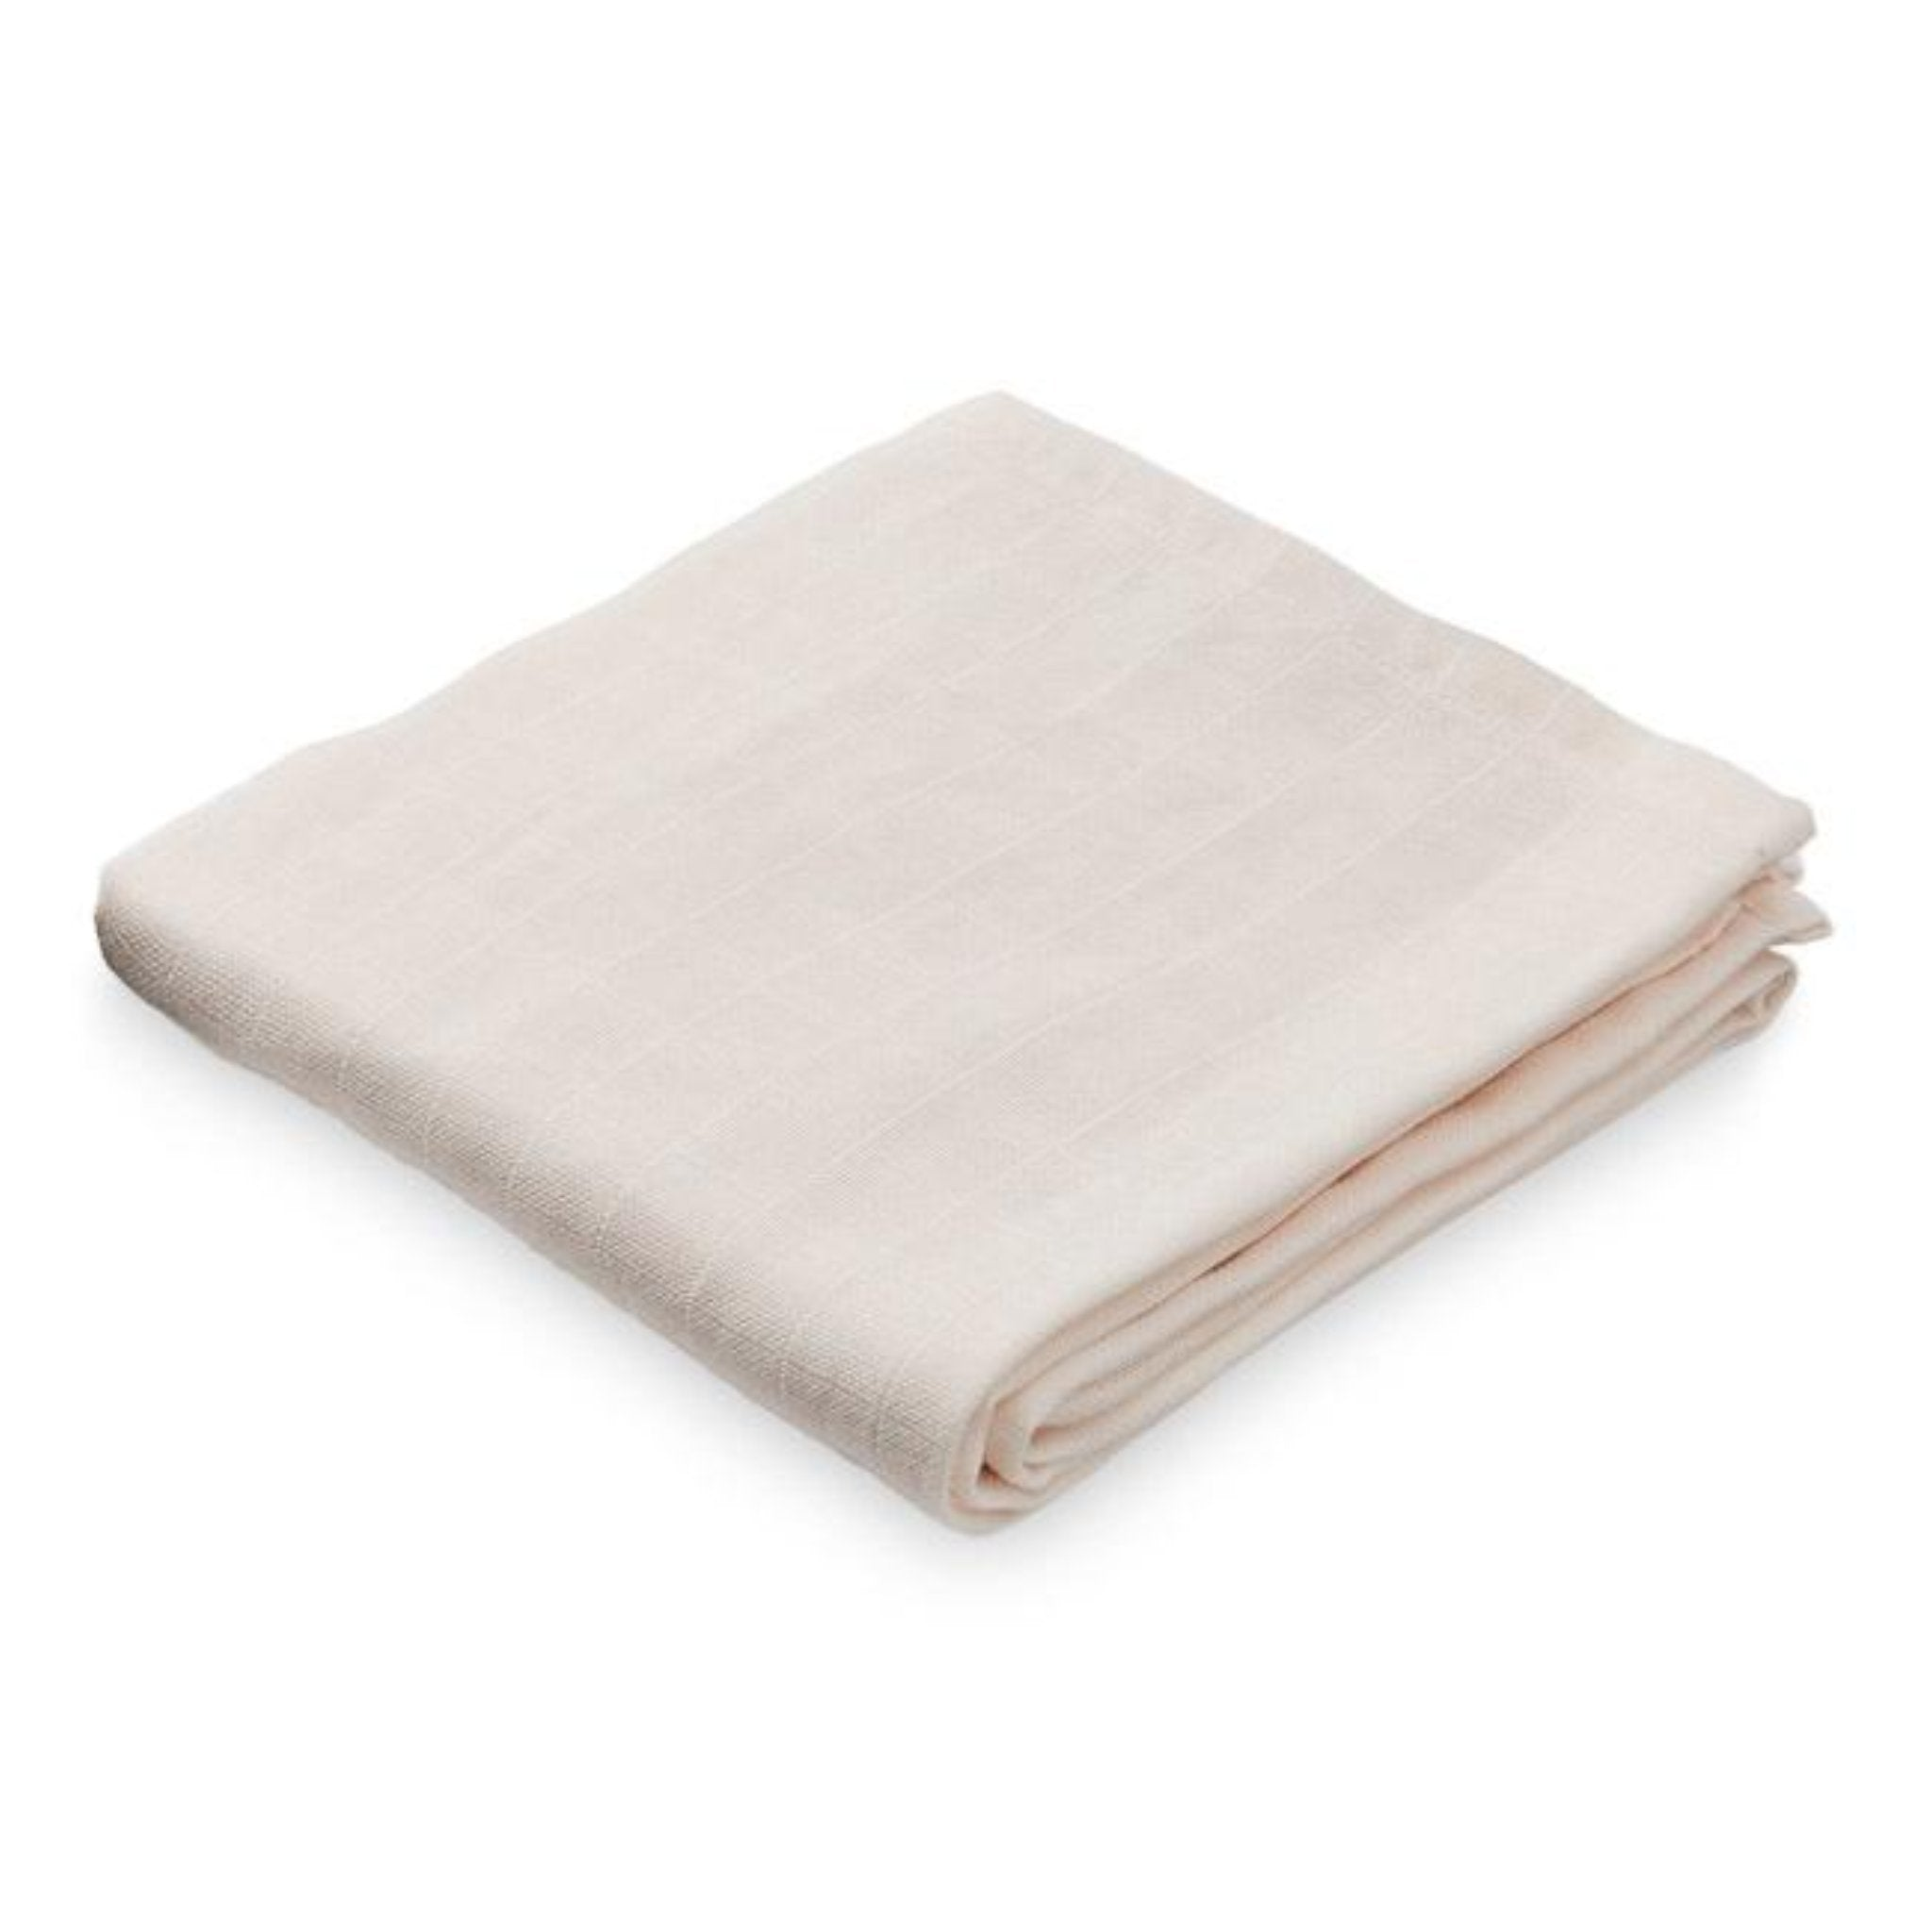 CAM CAM Organic Muslin Cloth Powder